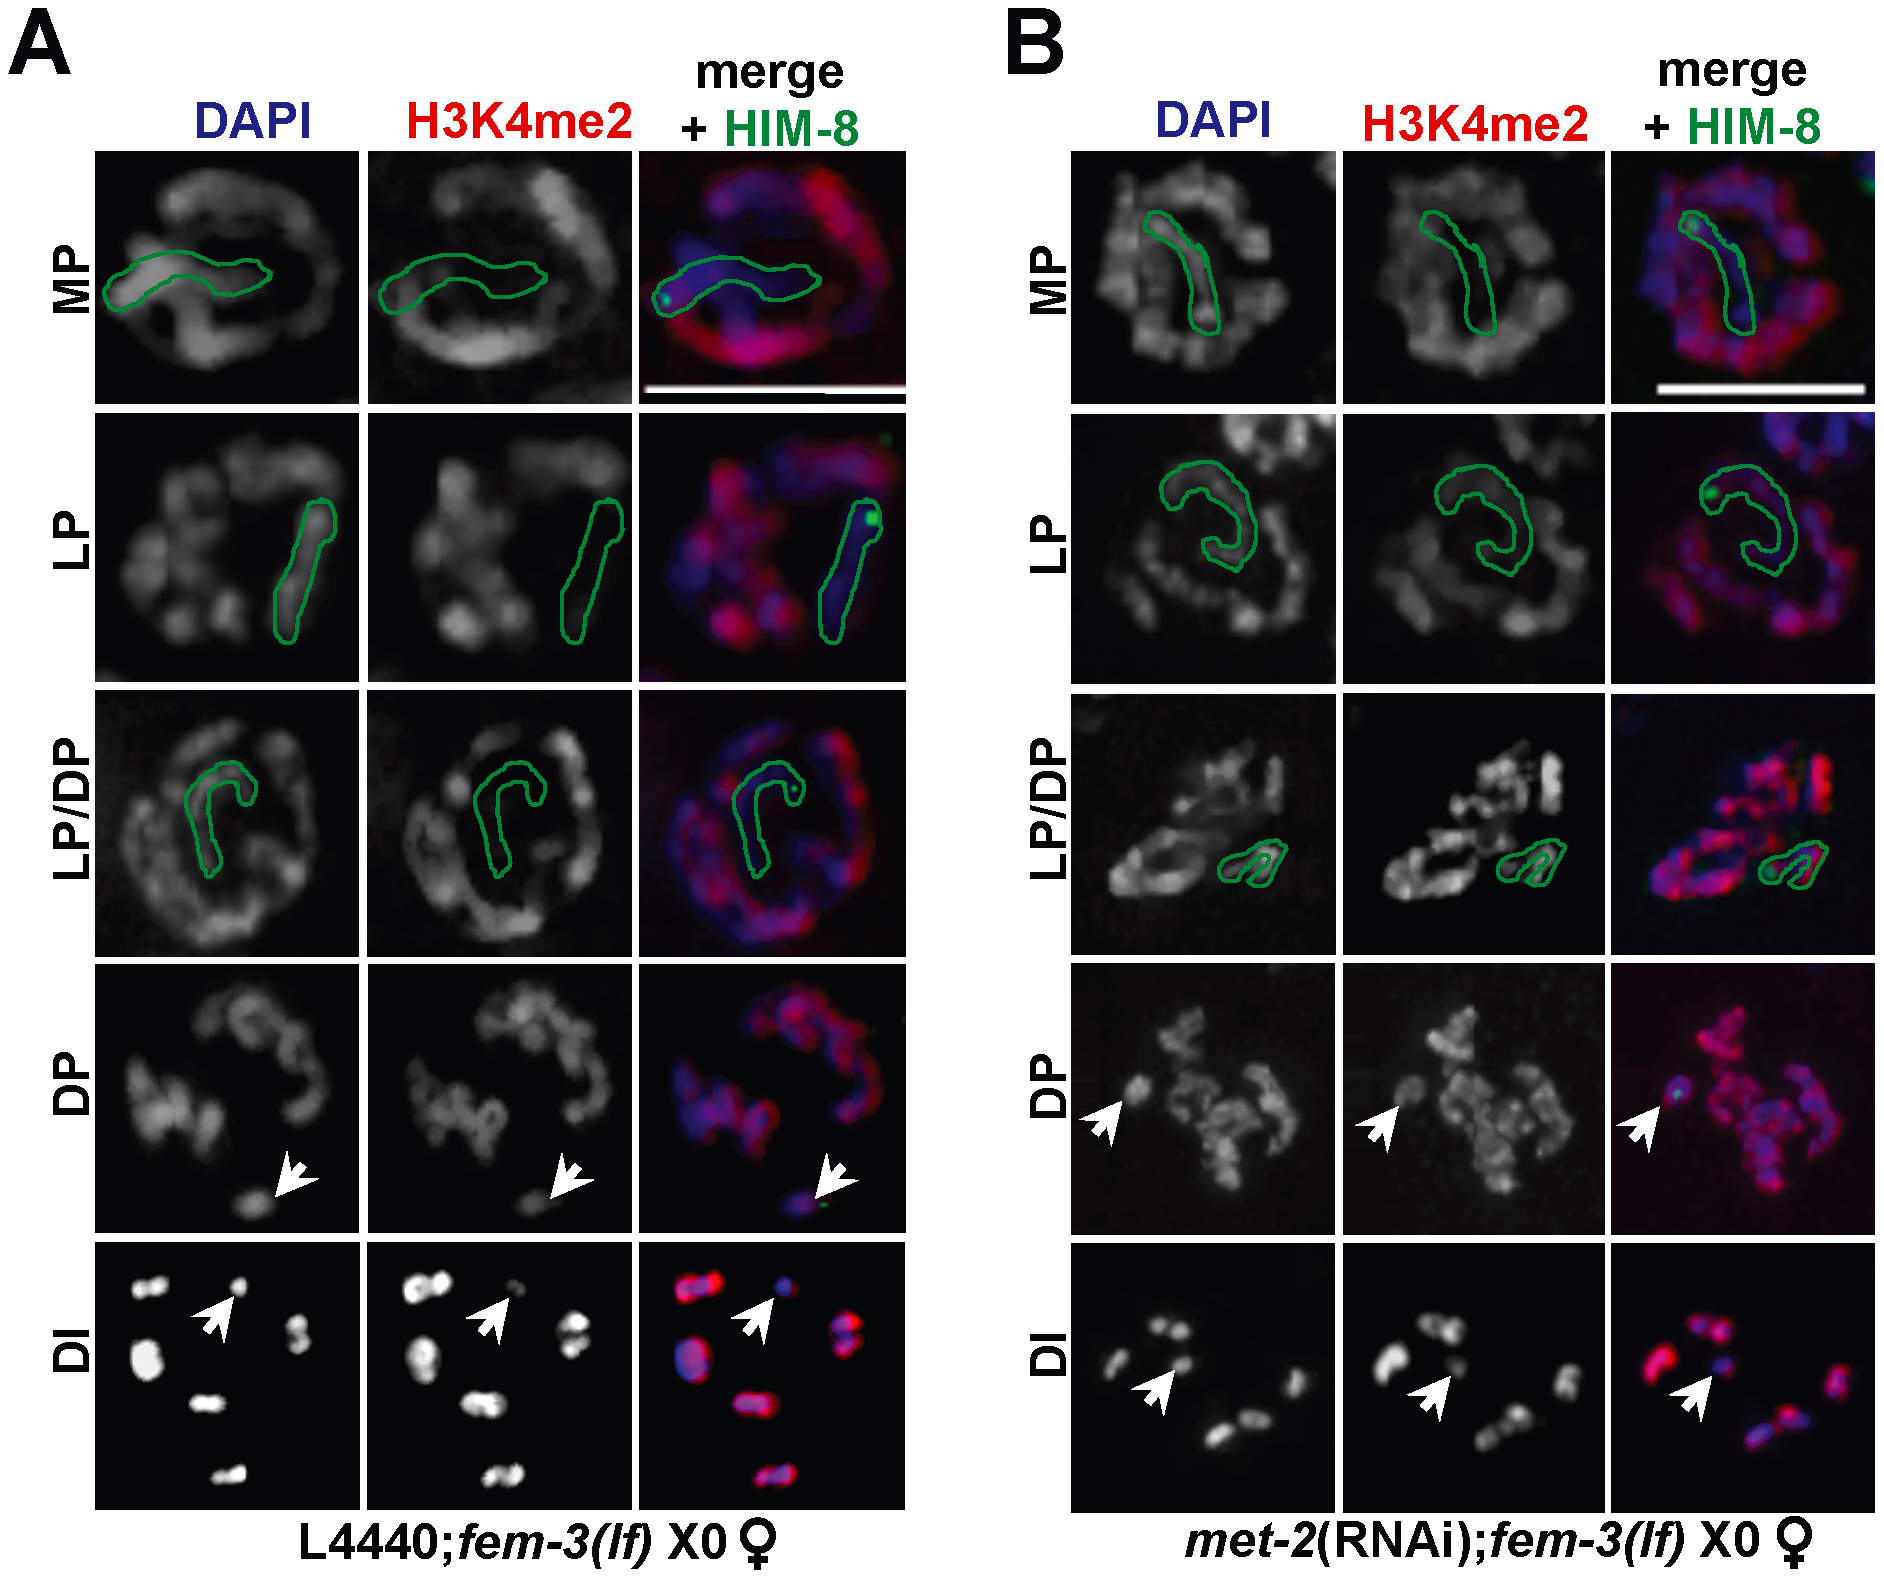 Ectopic X-specific H3K4me2 accumulation in late pachytene X0 germ lines depleted for <i>met-2</i>.